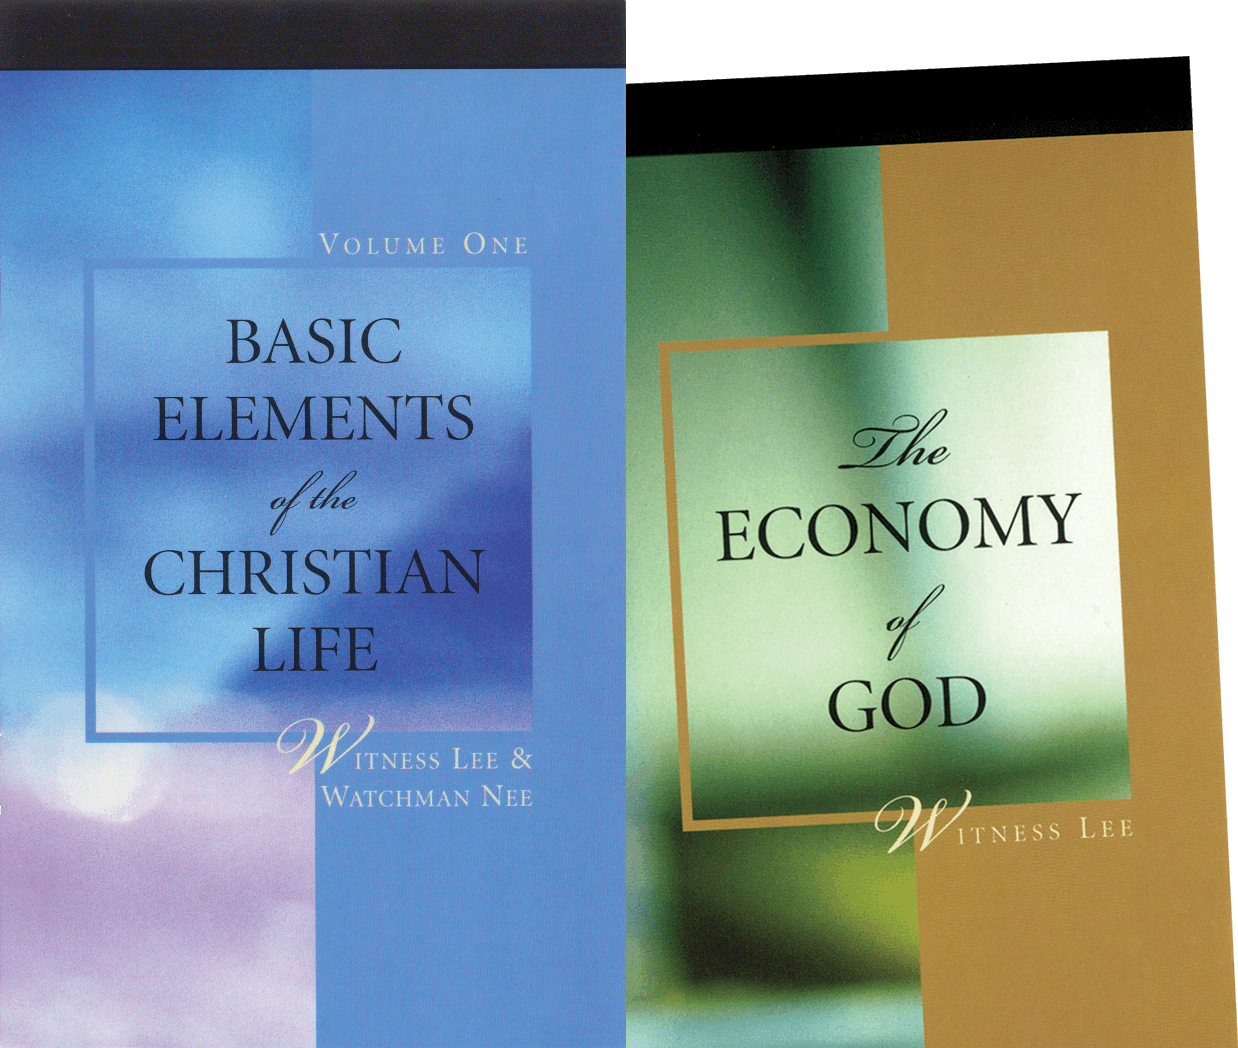 Free Christian E-Books by Watchman Nee and Witness Lee